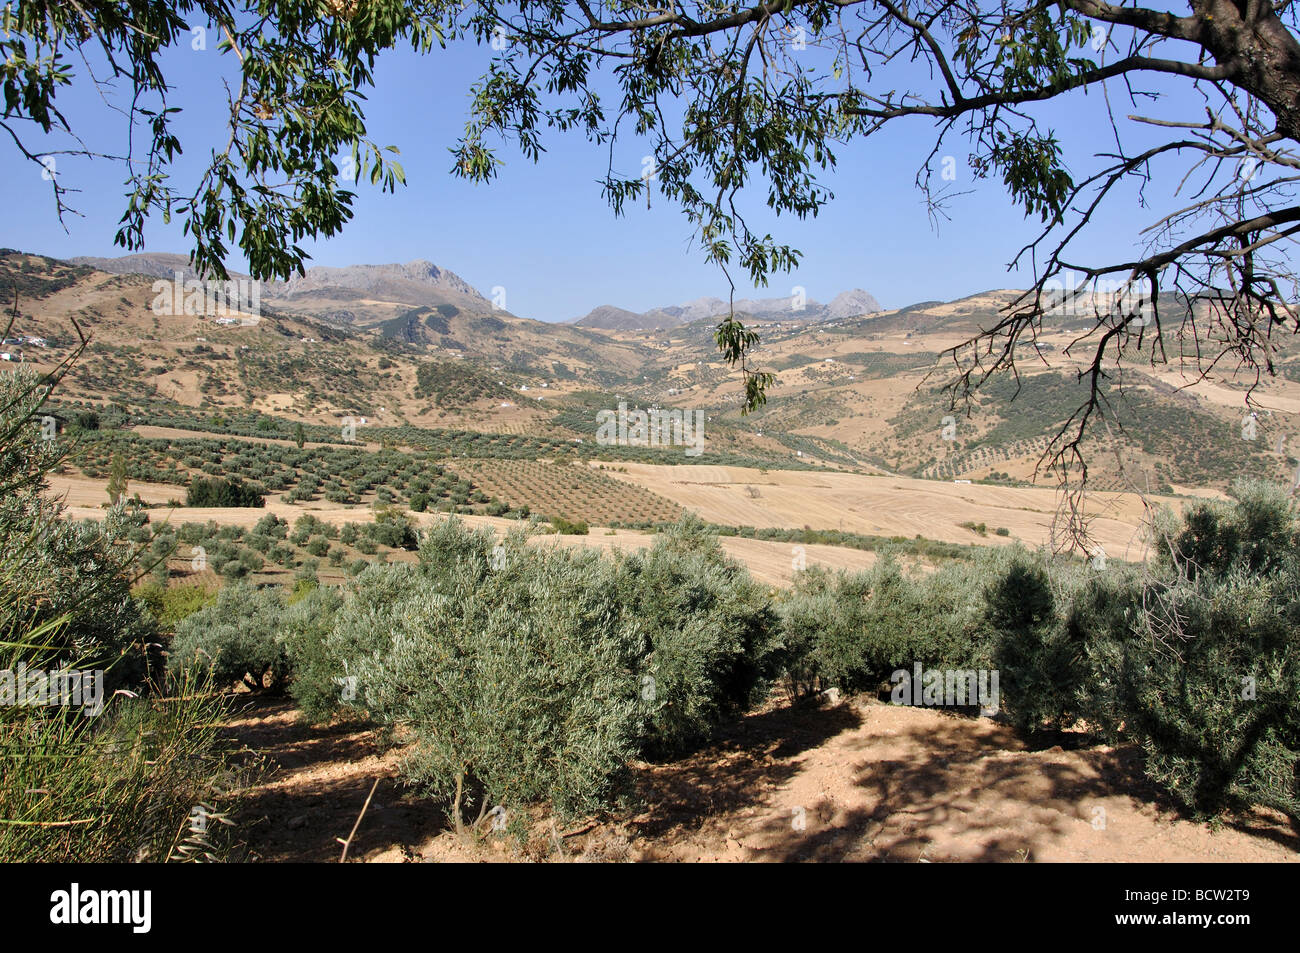 Landscape with olive groves, near Antequera, Malaga Province, Andalusia, Spain Stock Photo